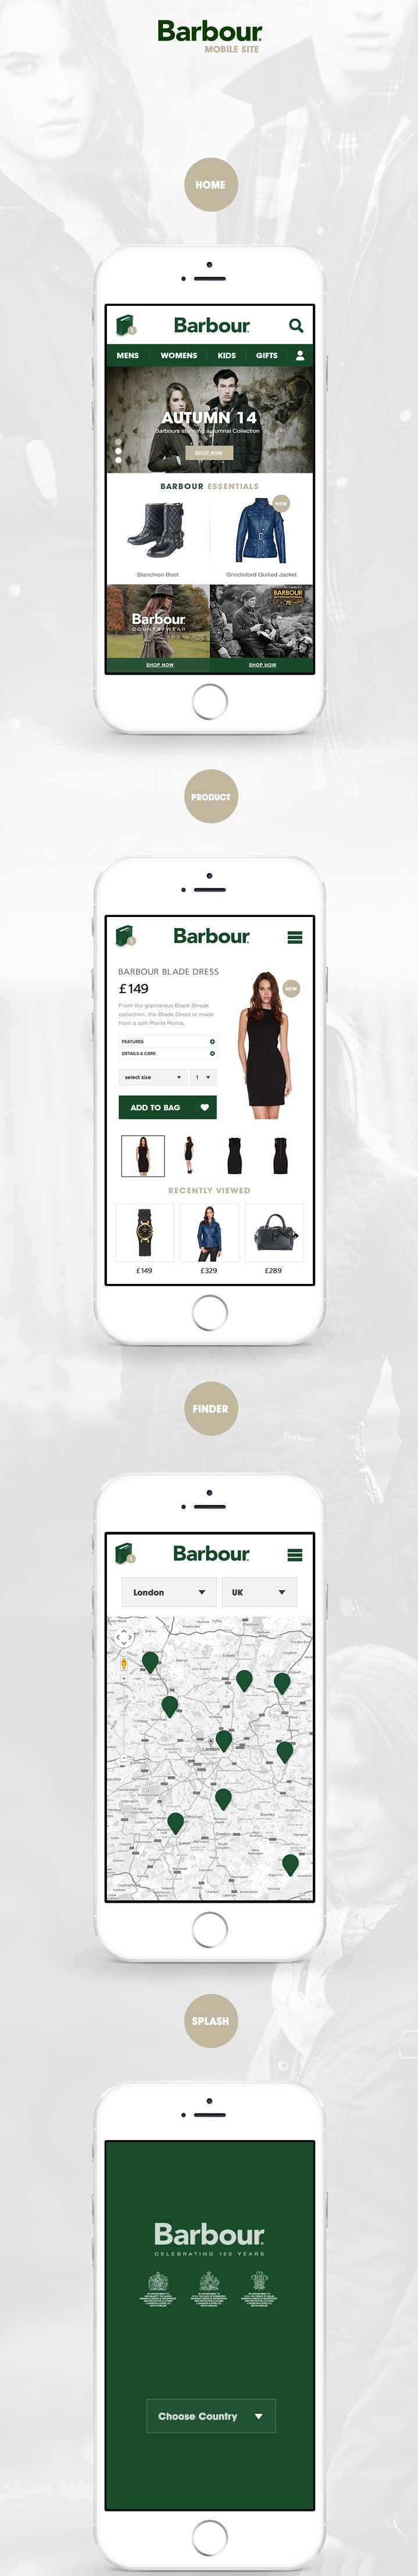 Barbour England - Mobile Site Design